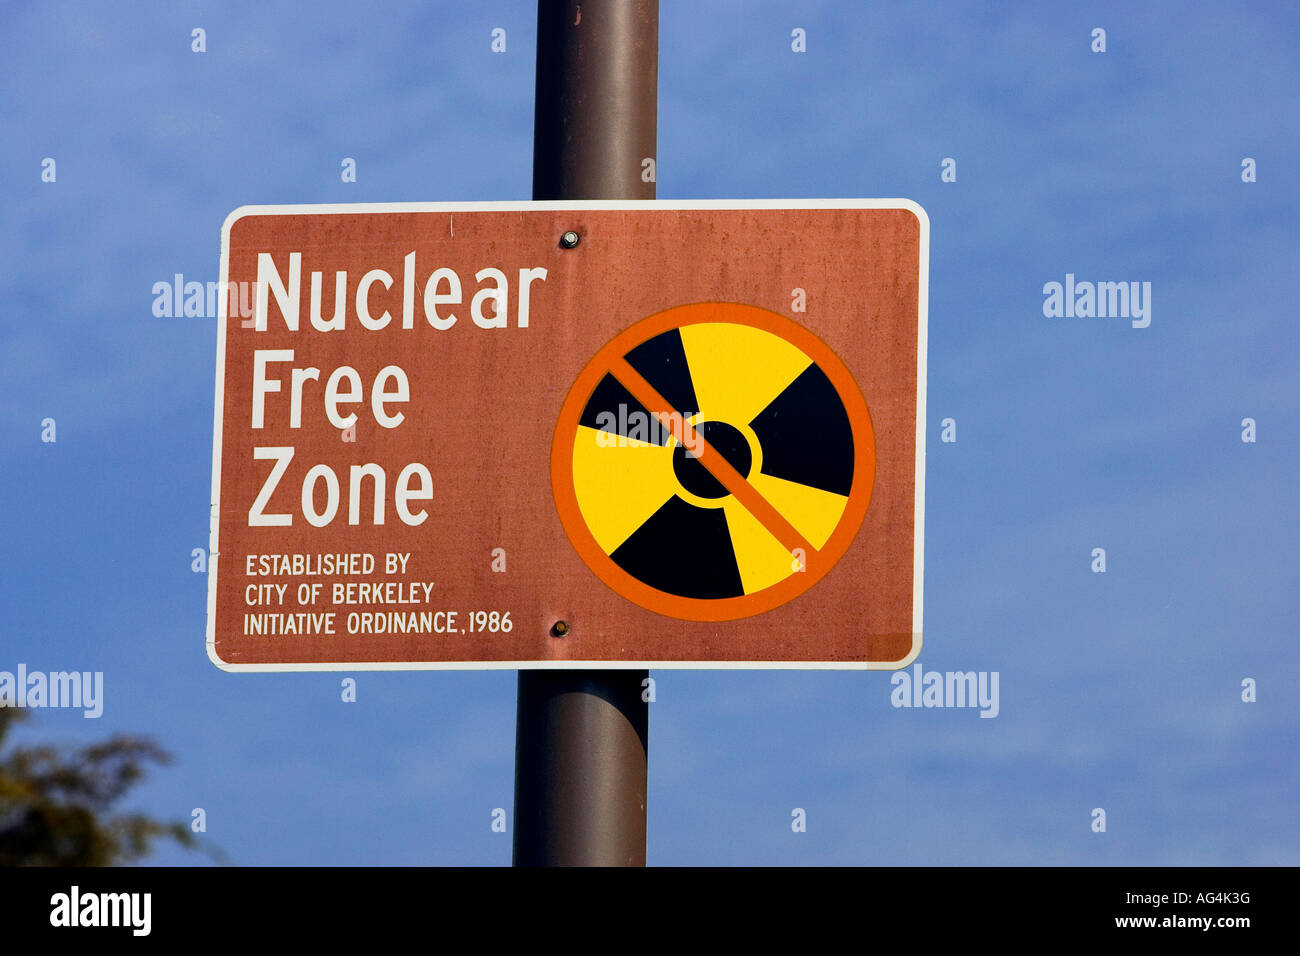 Berkeley Californica Nuclear Free Zone sign - Stock Image